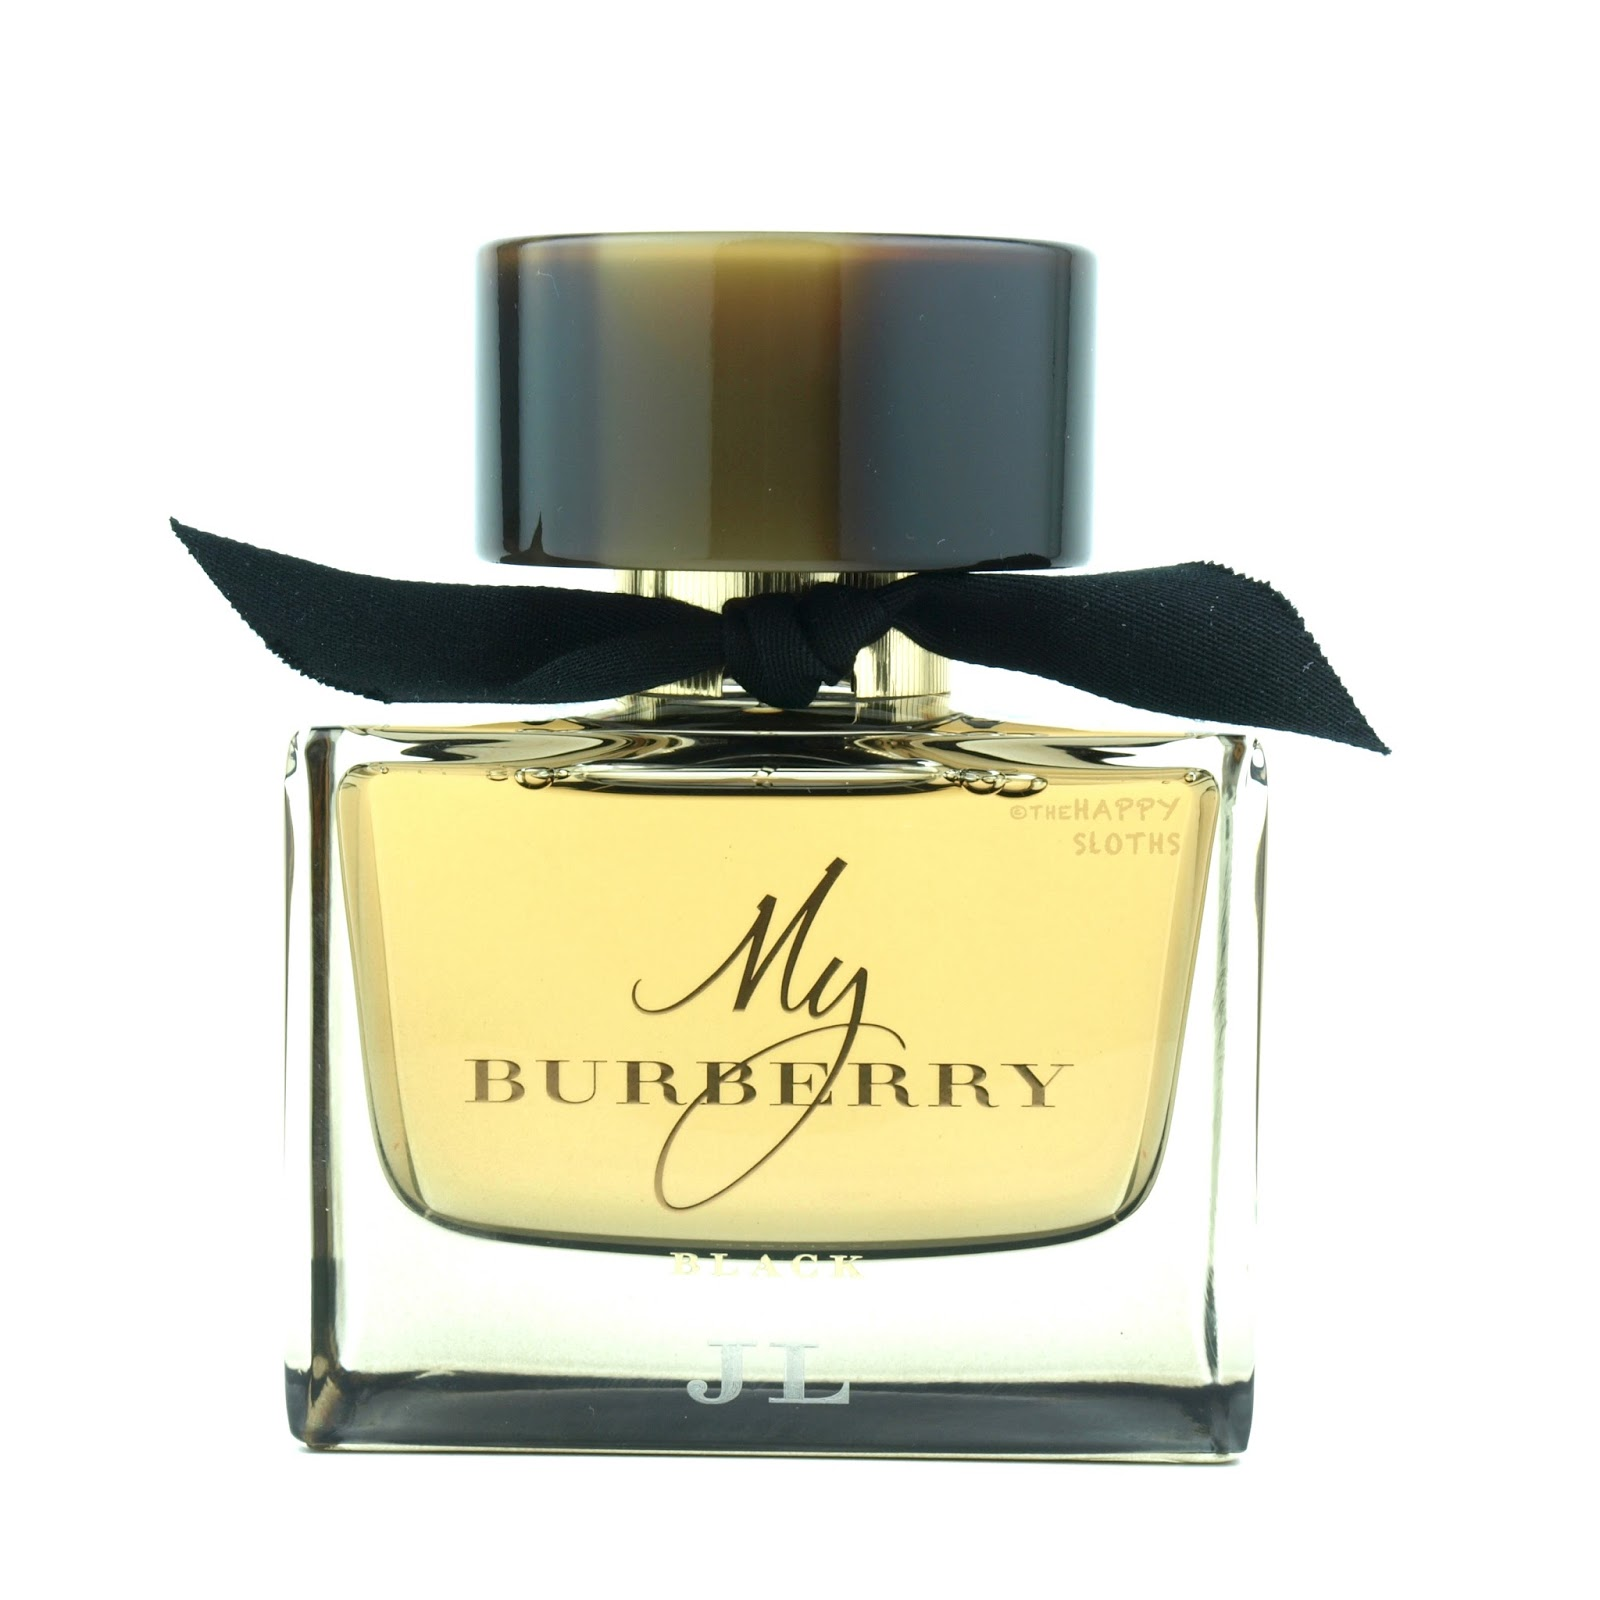 burberry my burberry black parfum review the happy sloths beauty makeup review blog. Black Bedroom Furniture Sets. Home Design Ideas